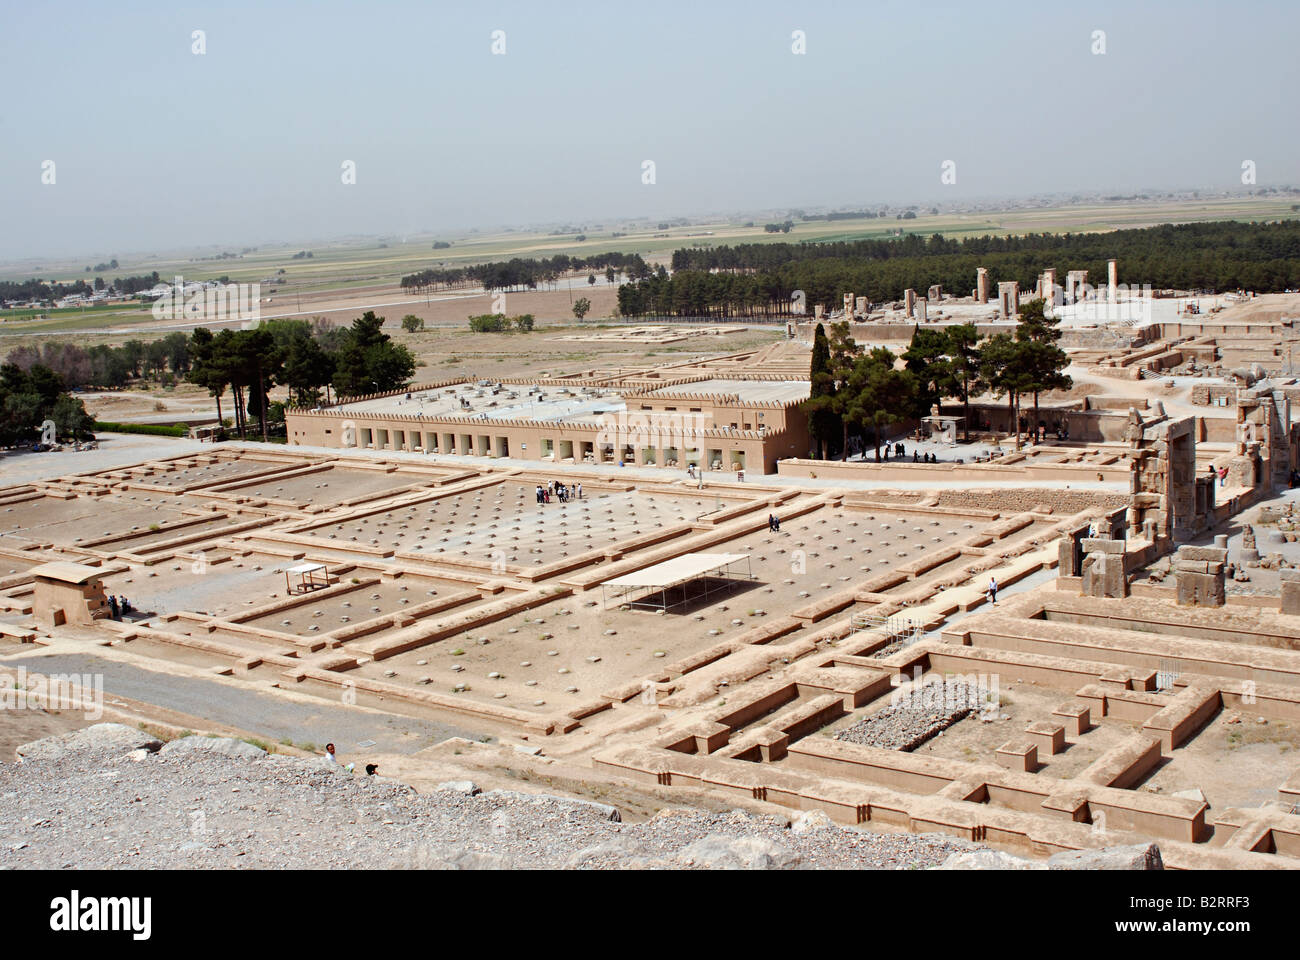 Iran Persepolis General View Of The Remains Of The Palace Stock Photo Alamy